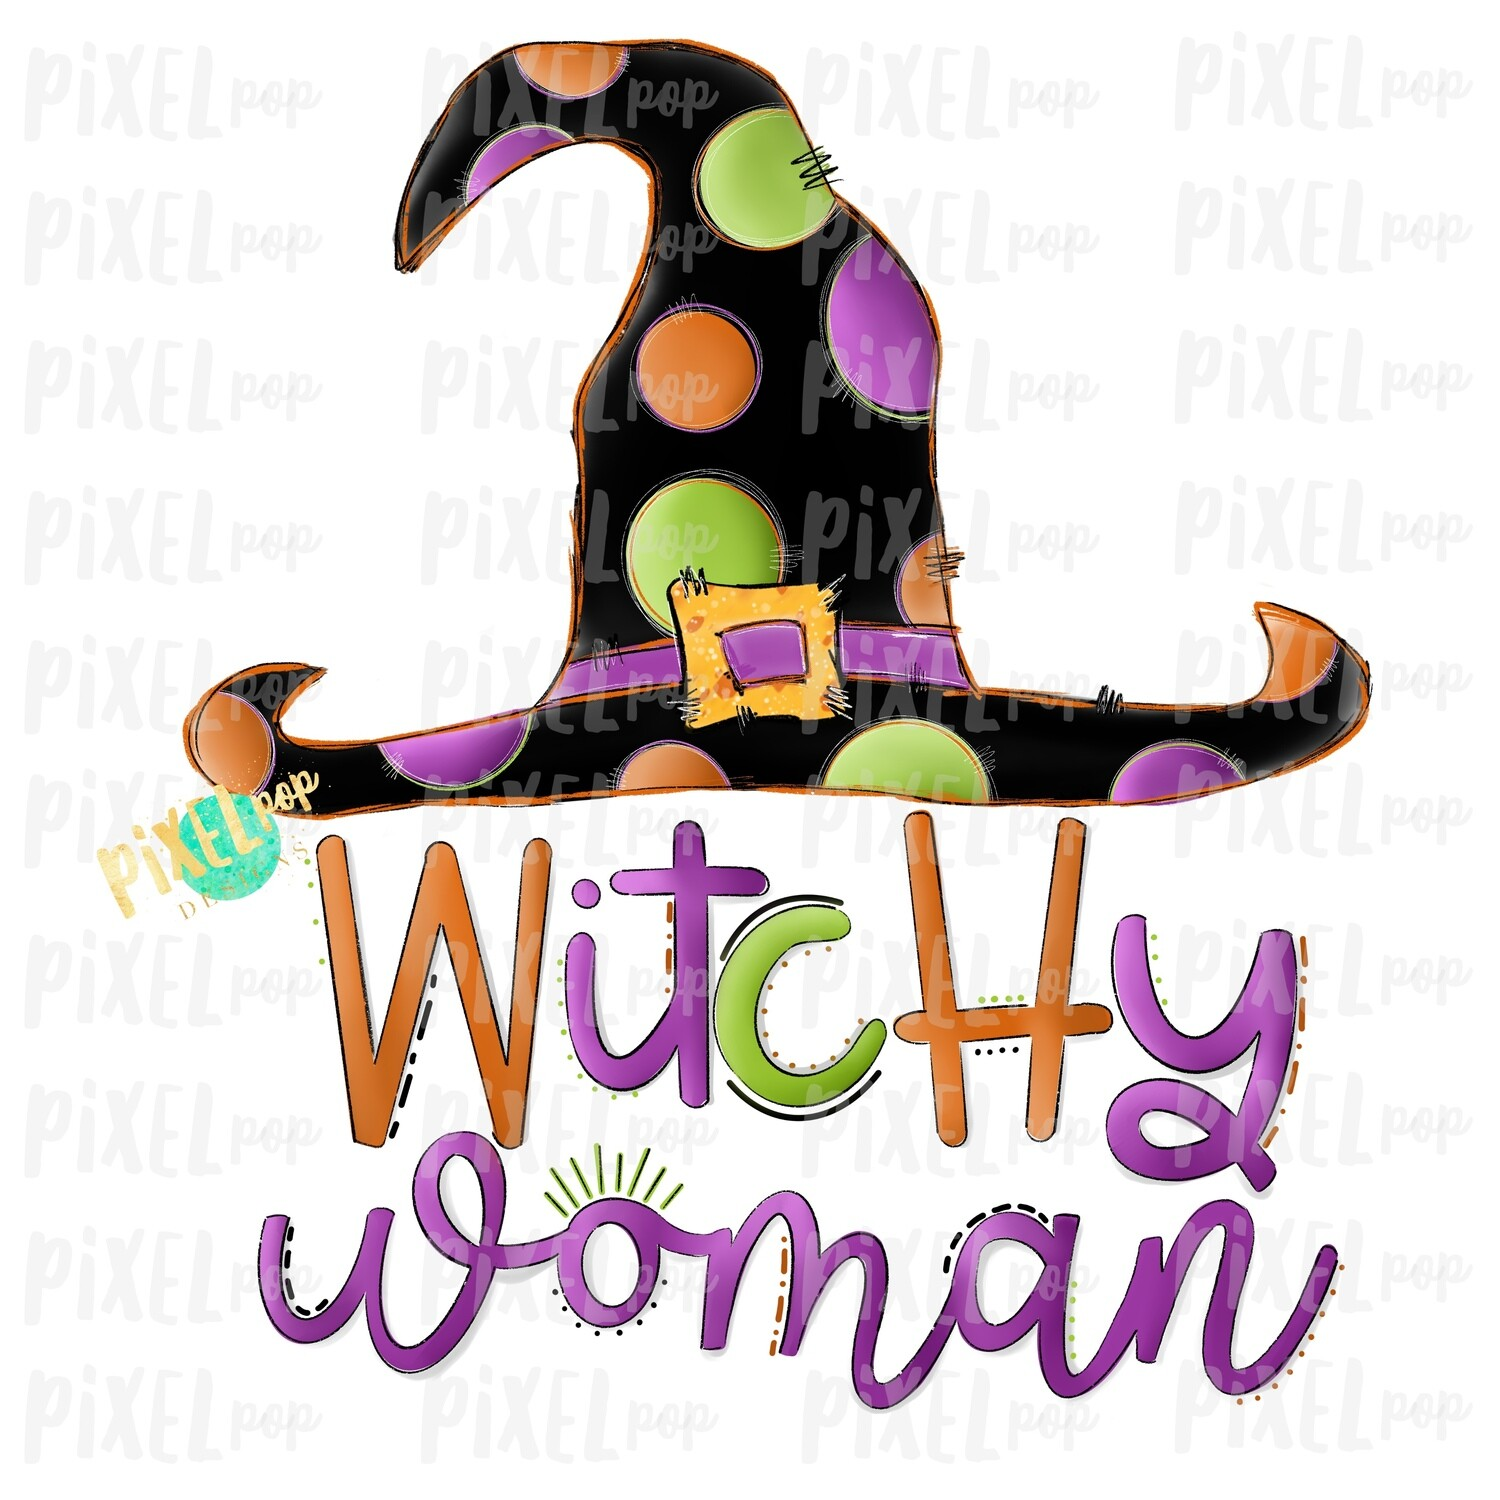 Witchy Woman Witch Hat Halloween Sublimation PNG | Hand Drawn Painted Design | Sublimation PNG | Digital Download | Printable Artwork | Art